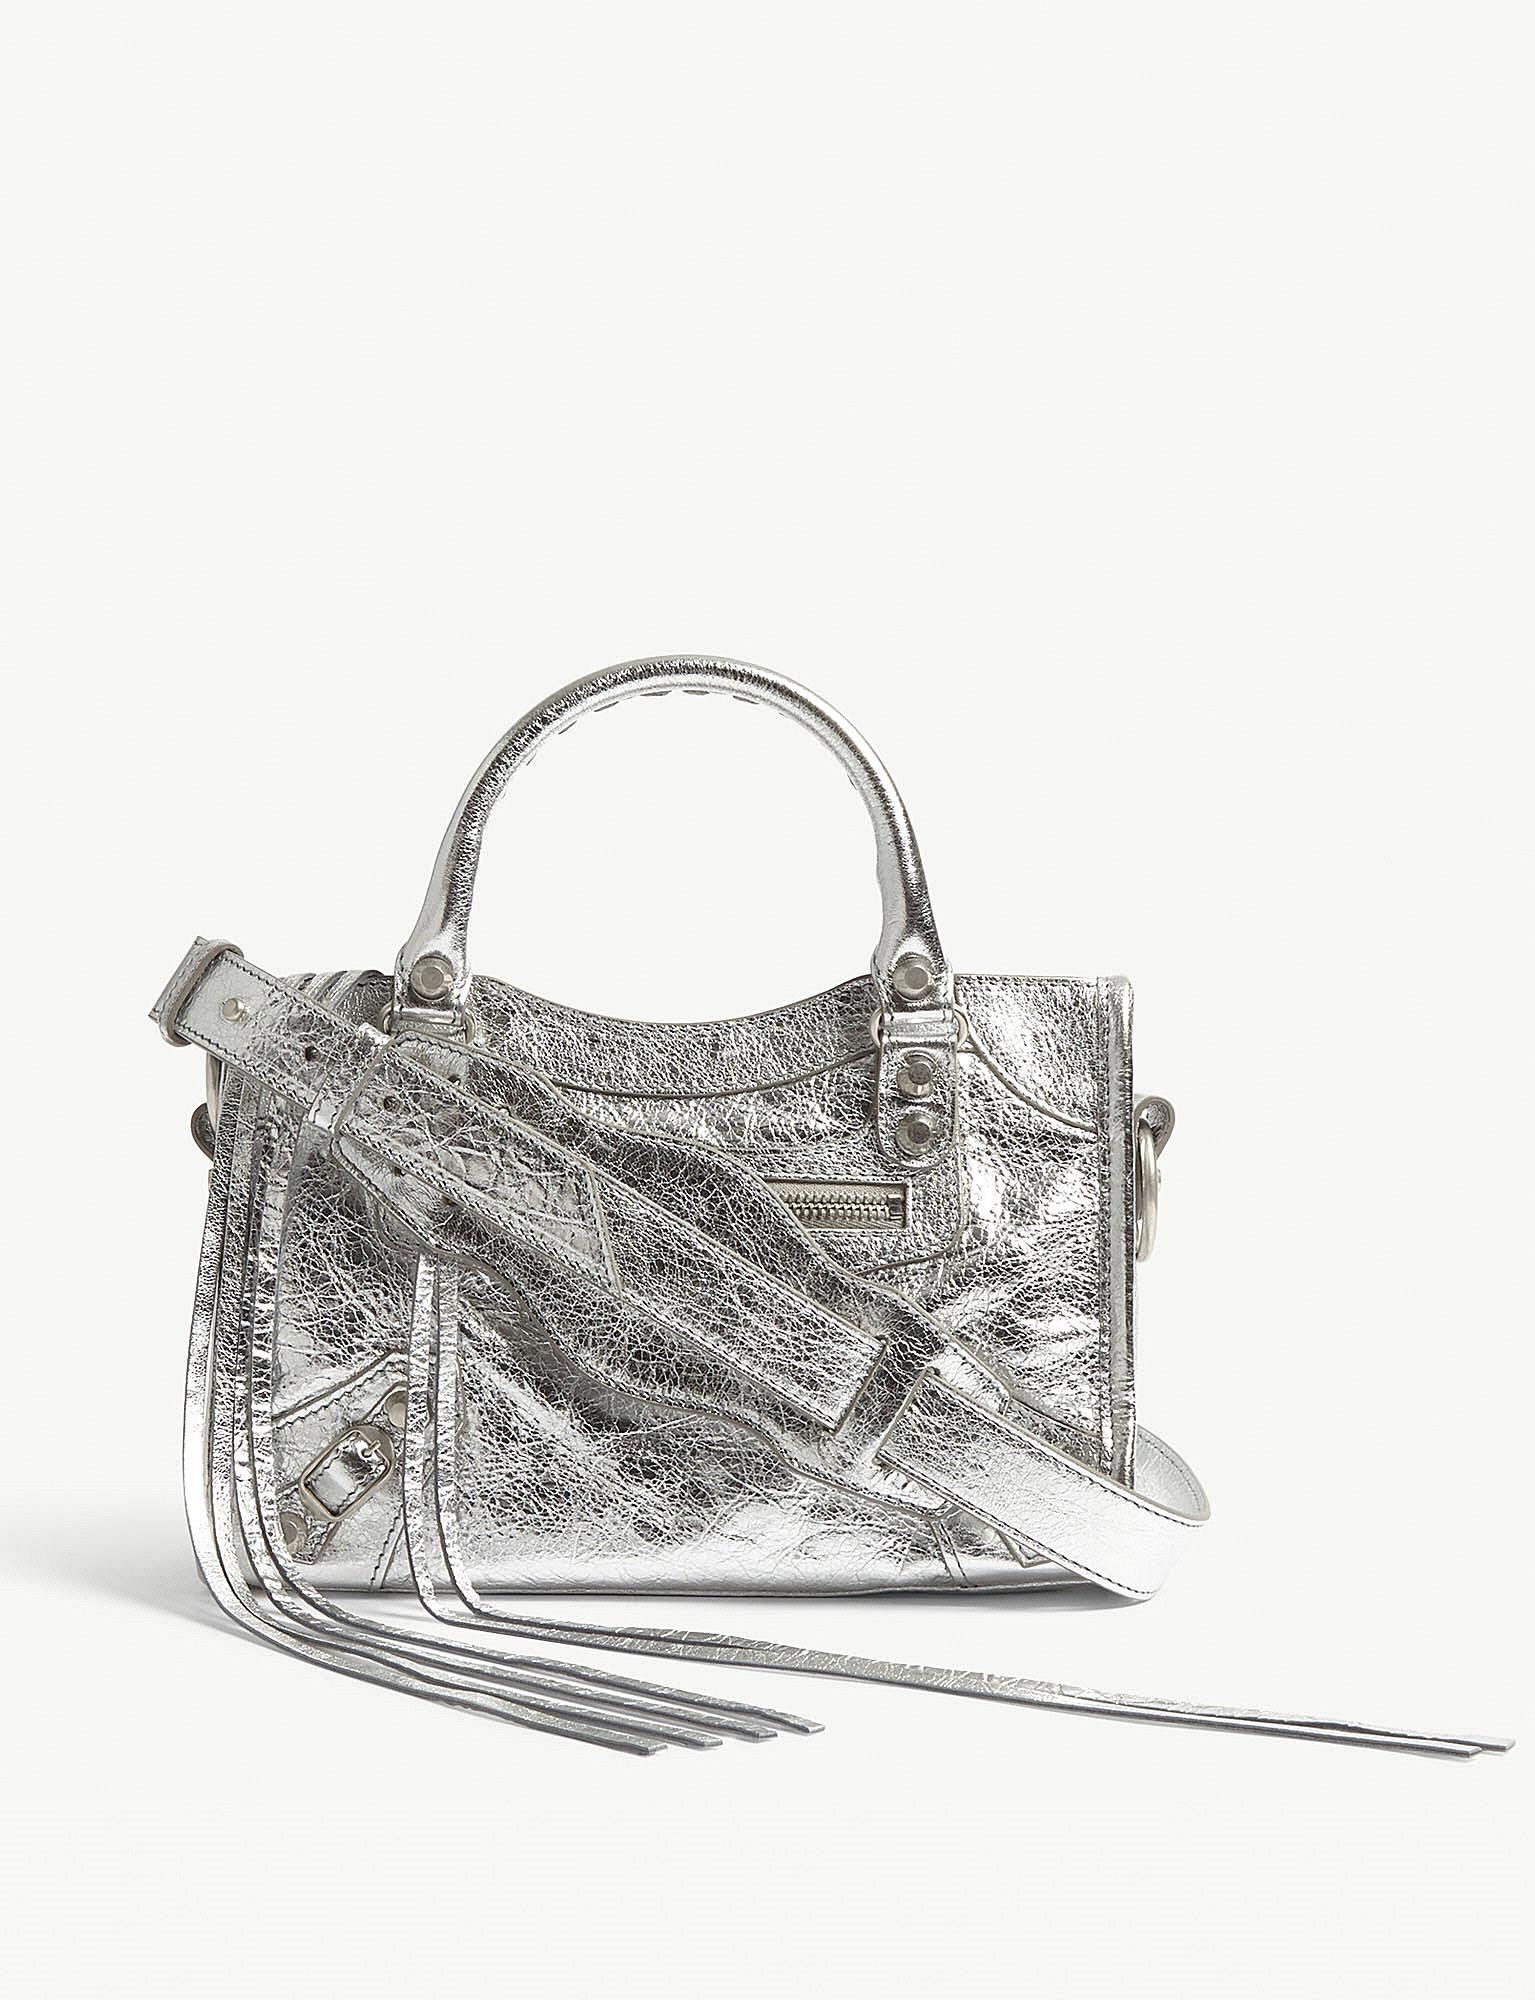 96c3d592db7ce Lyst - Balenciaga Metallic Mini City Leather Shoulder Bag in Metallic